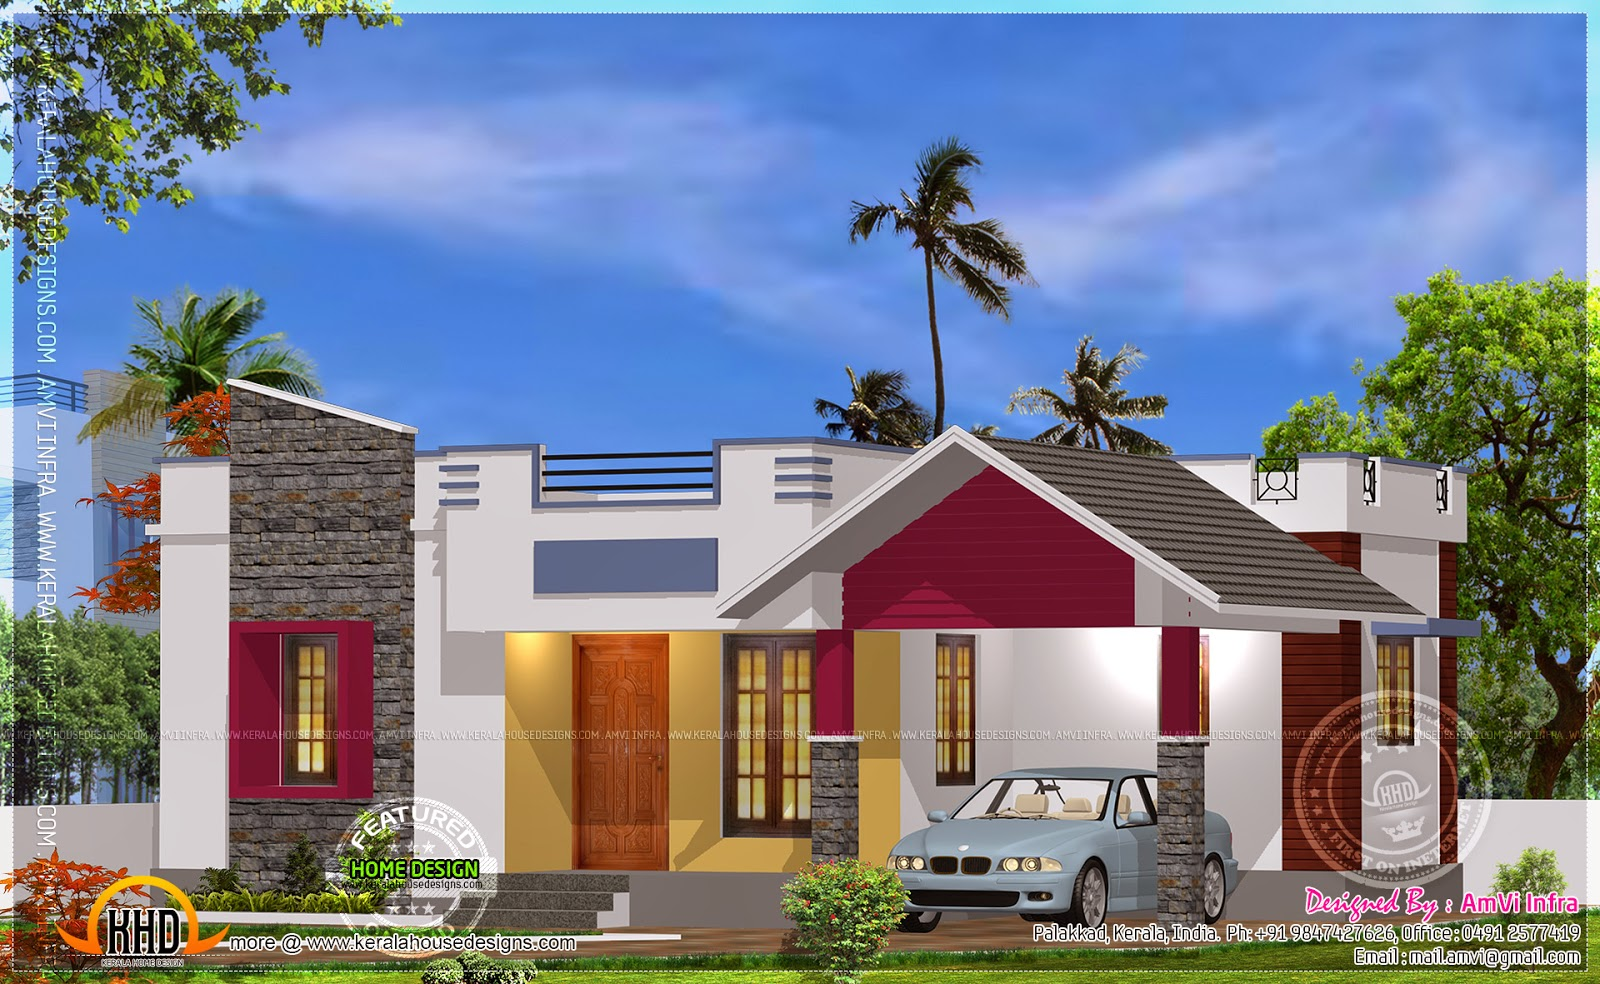 Stylish 900 sq ft new 2 bedroom kerala home design with for House designs 950 sq ft